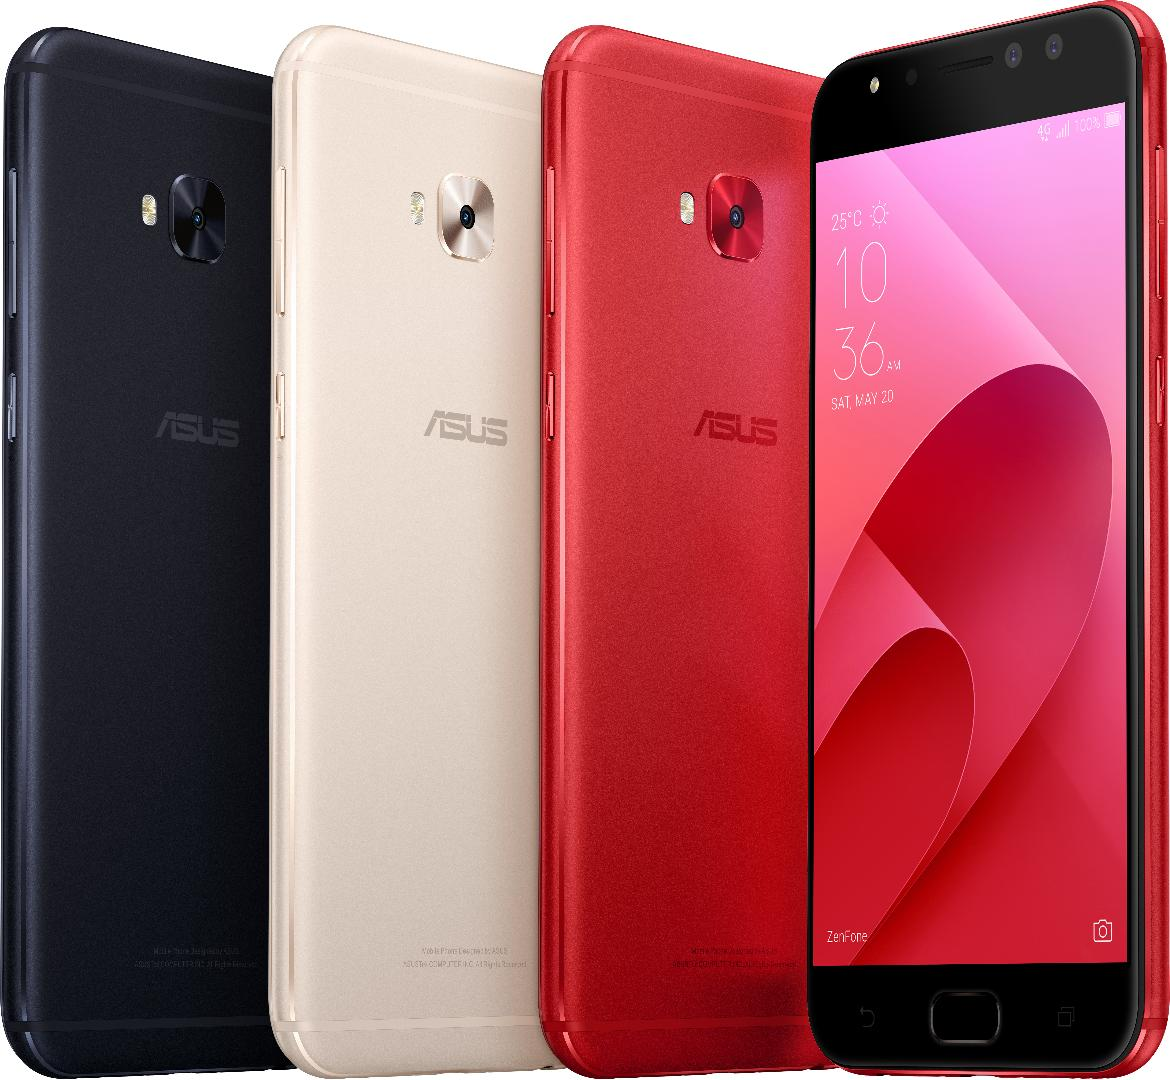 asus zenfone 4 launches with pro selfie and max models gadgetmatch. Black Bedroom Furniture Sets. Home Design Ideas